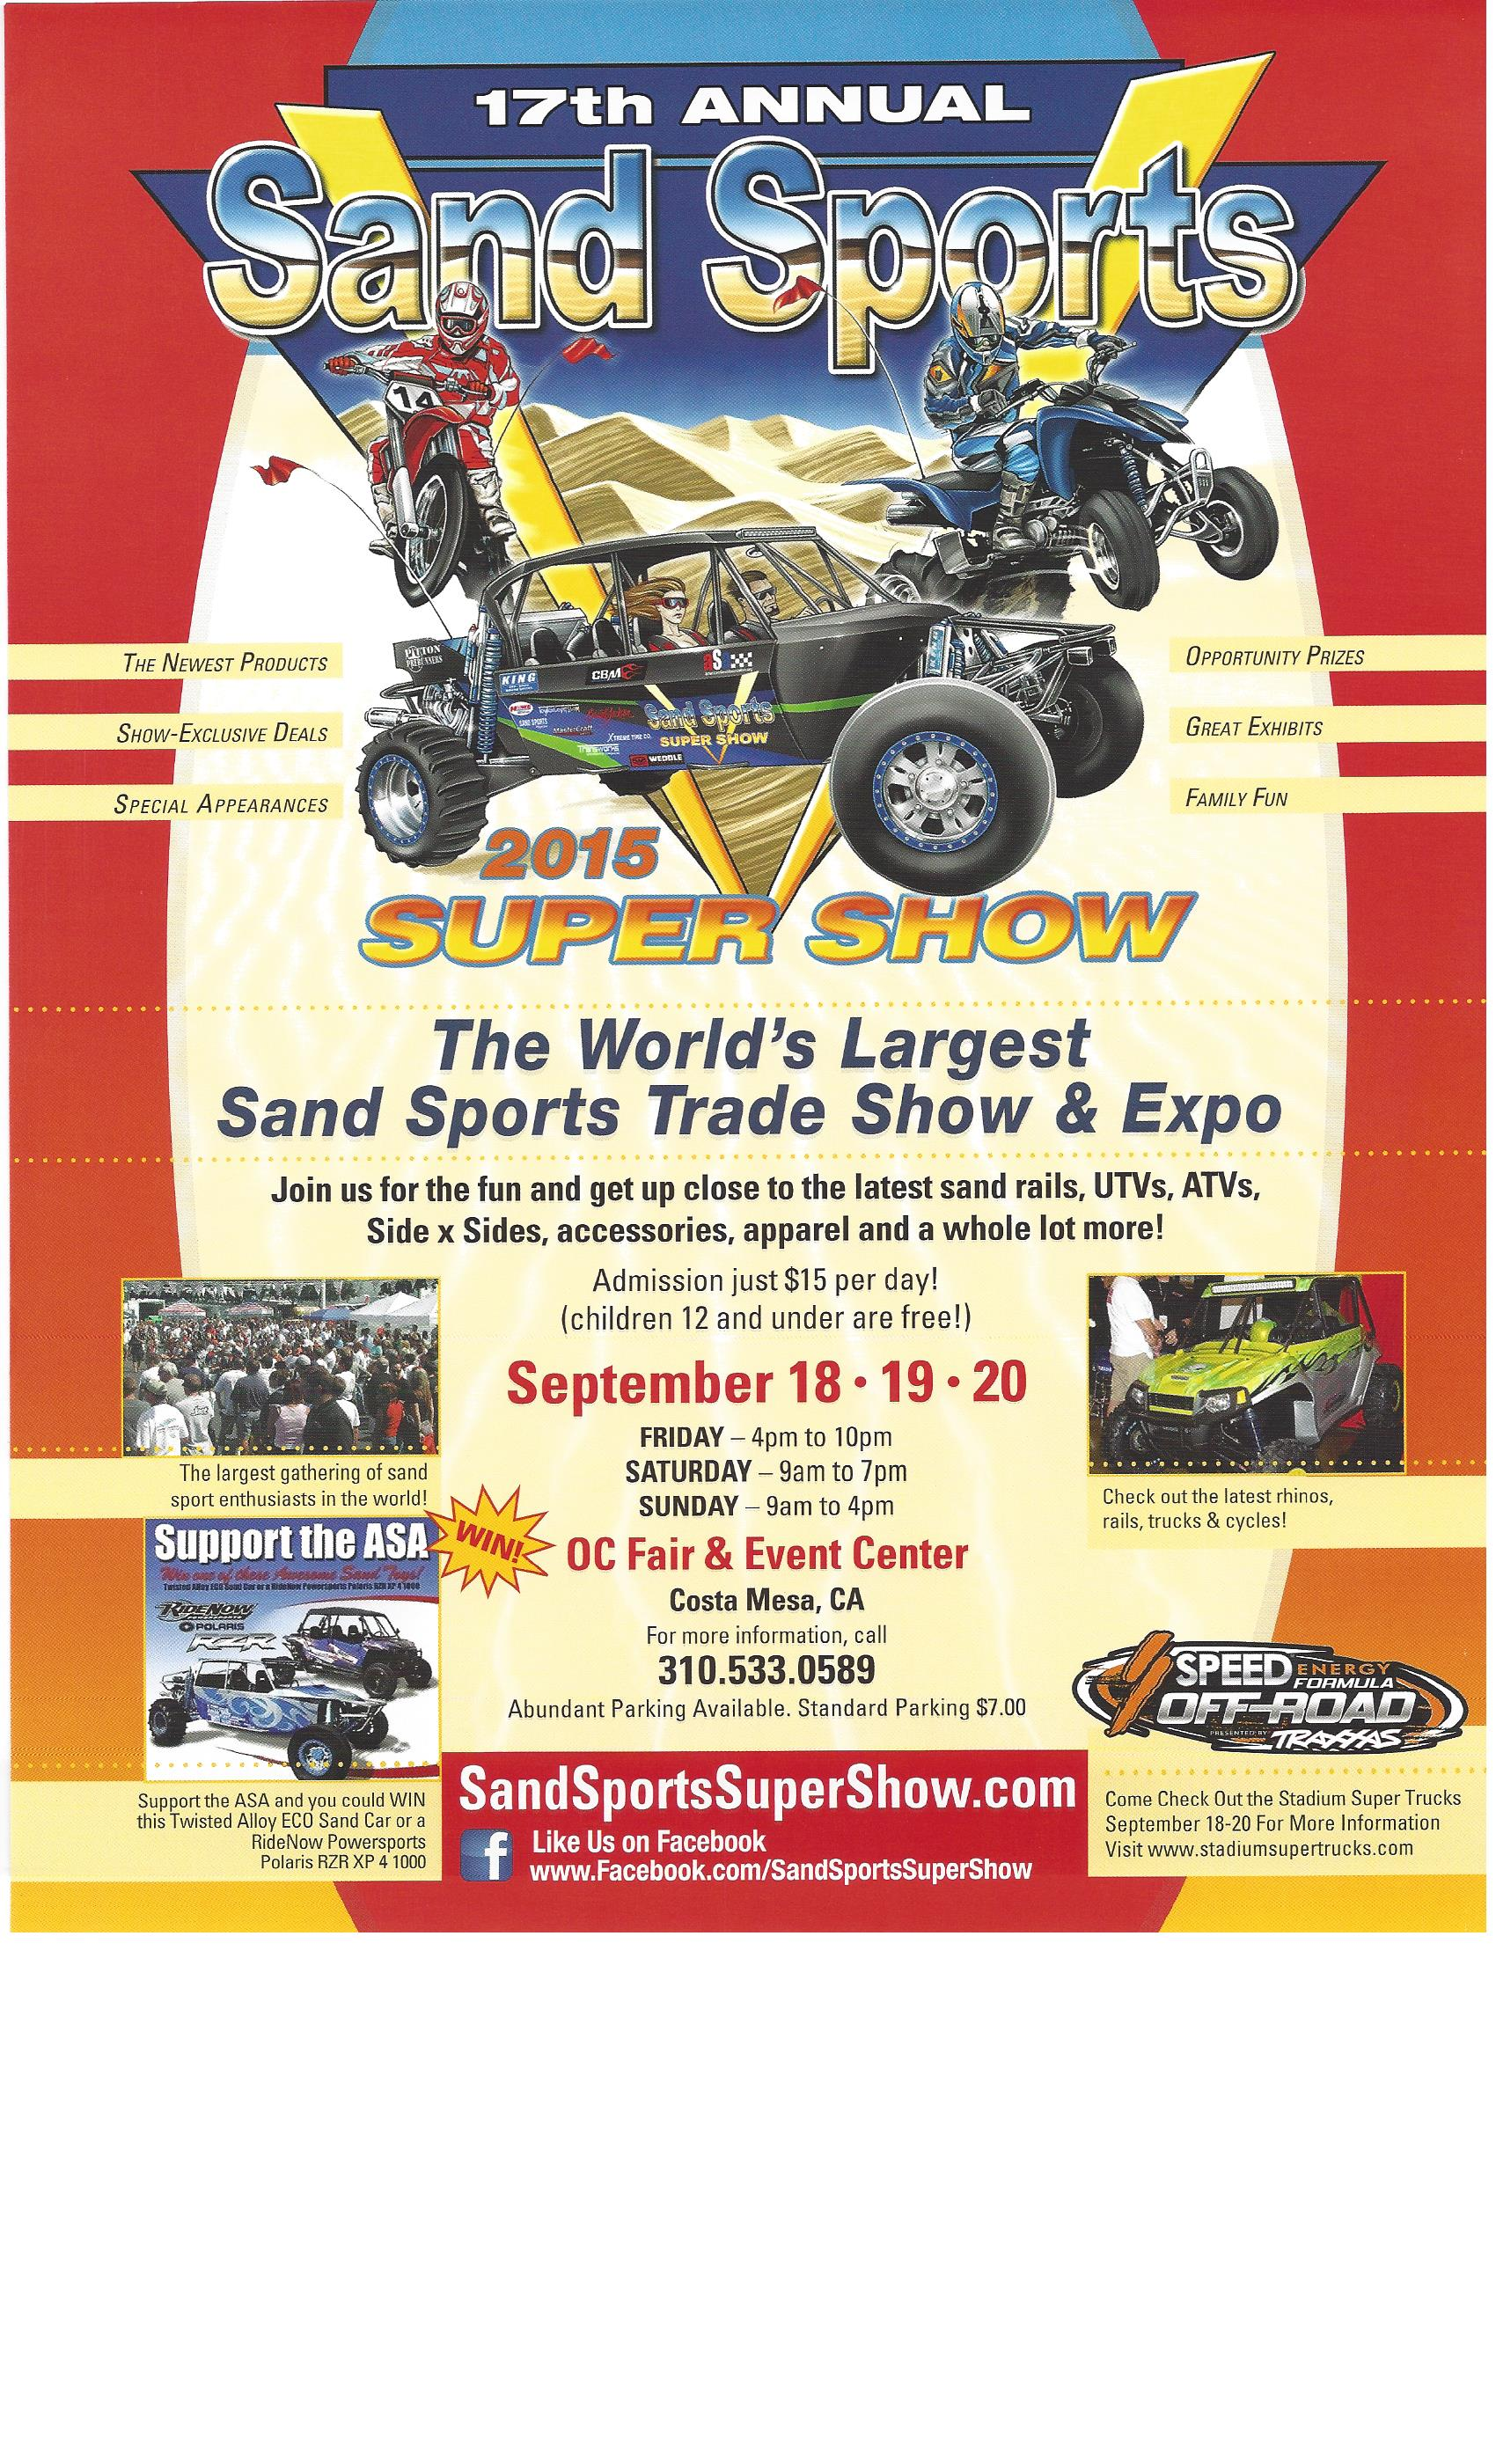 World 39 s largest sand sports trade show slip face sandboards for Largest craft shows in the us